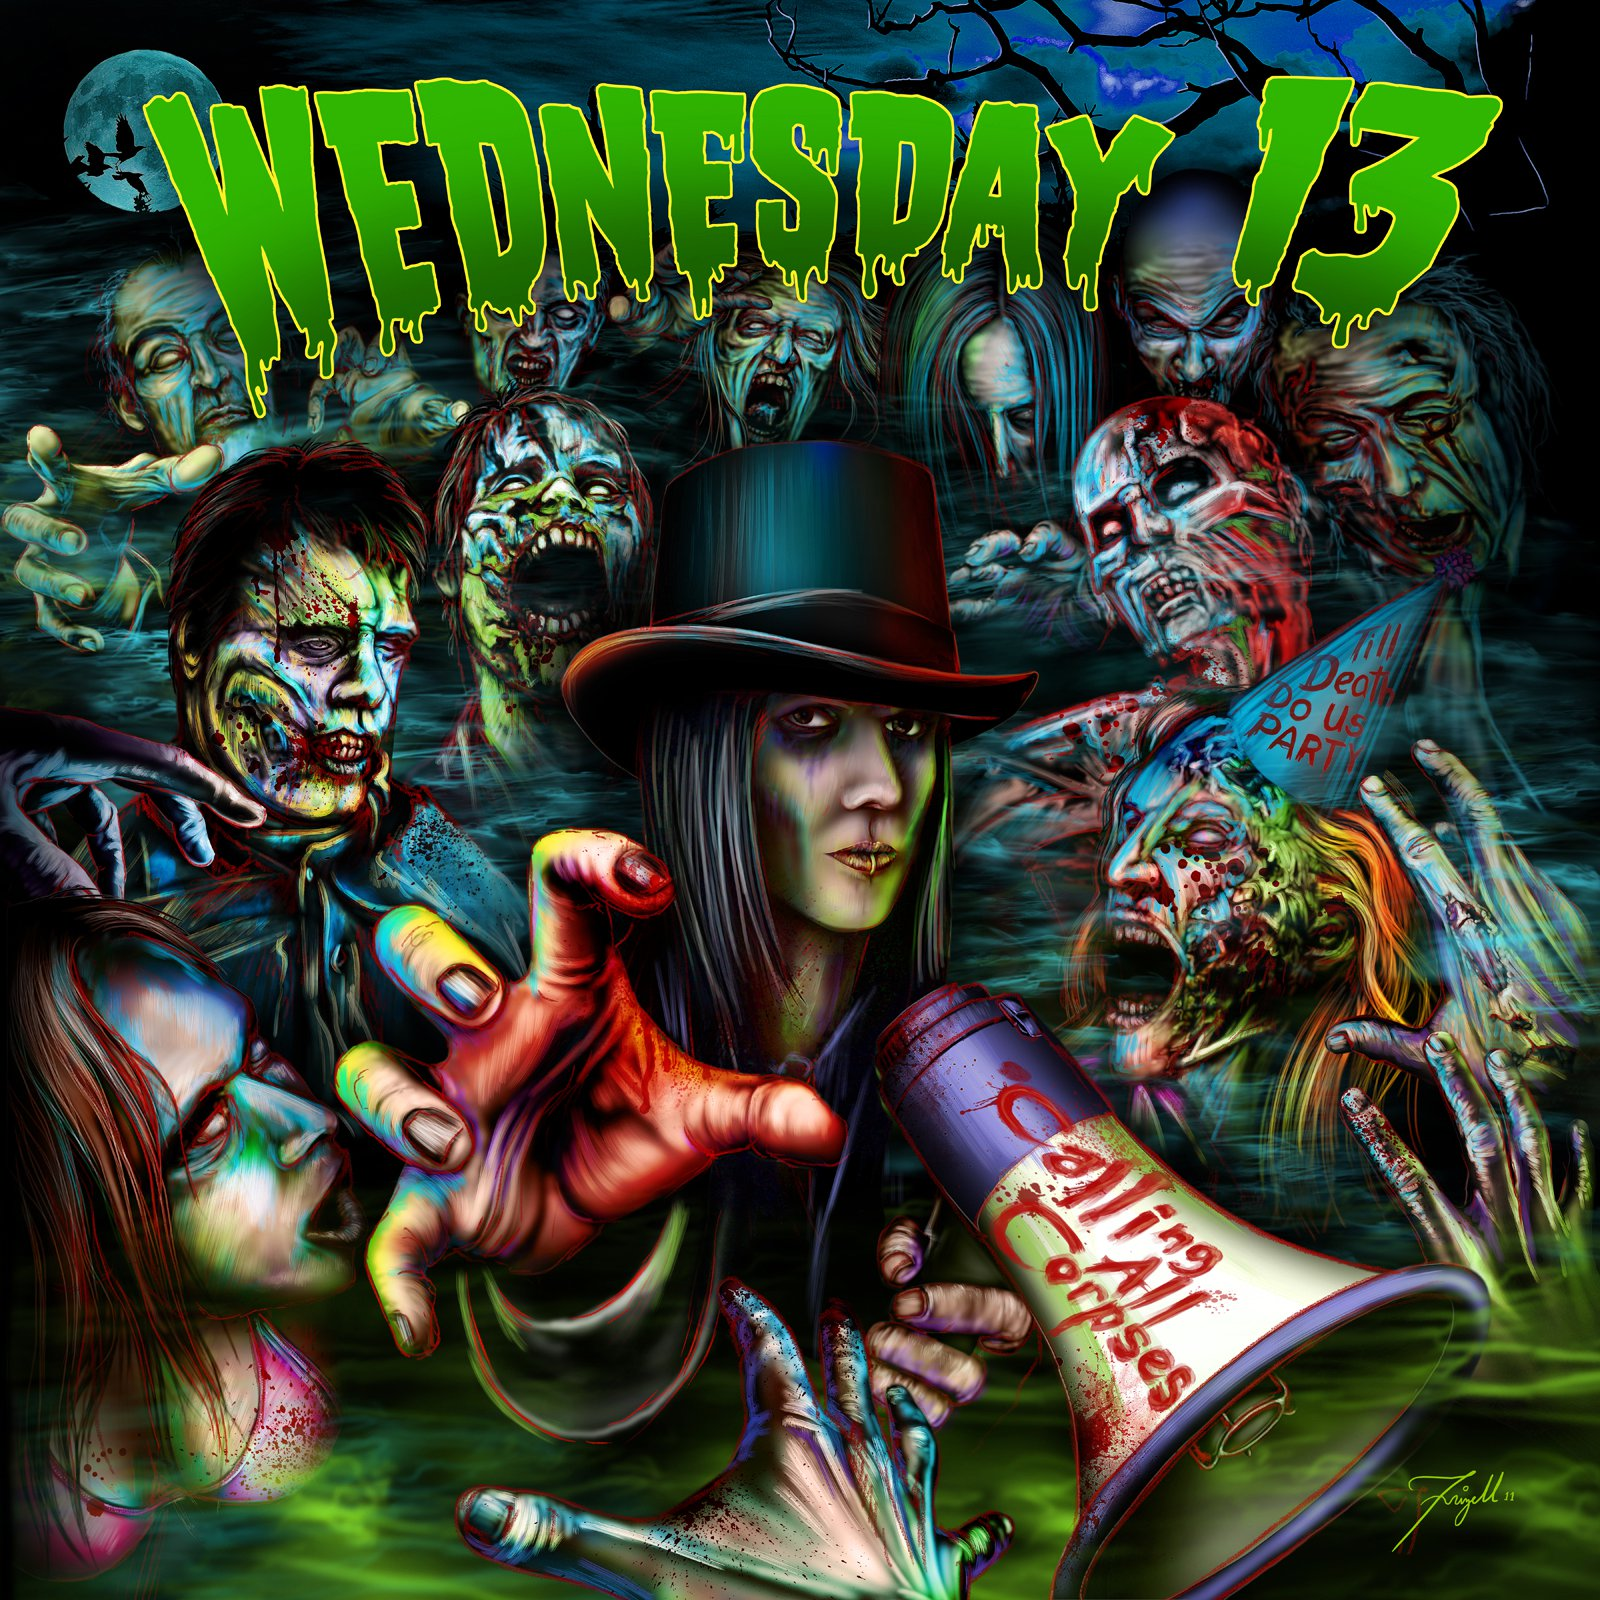 Wednesday 13 – Calling All Corpses, Soundwave 2012